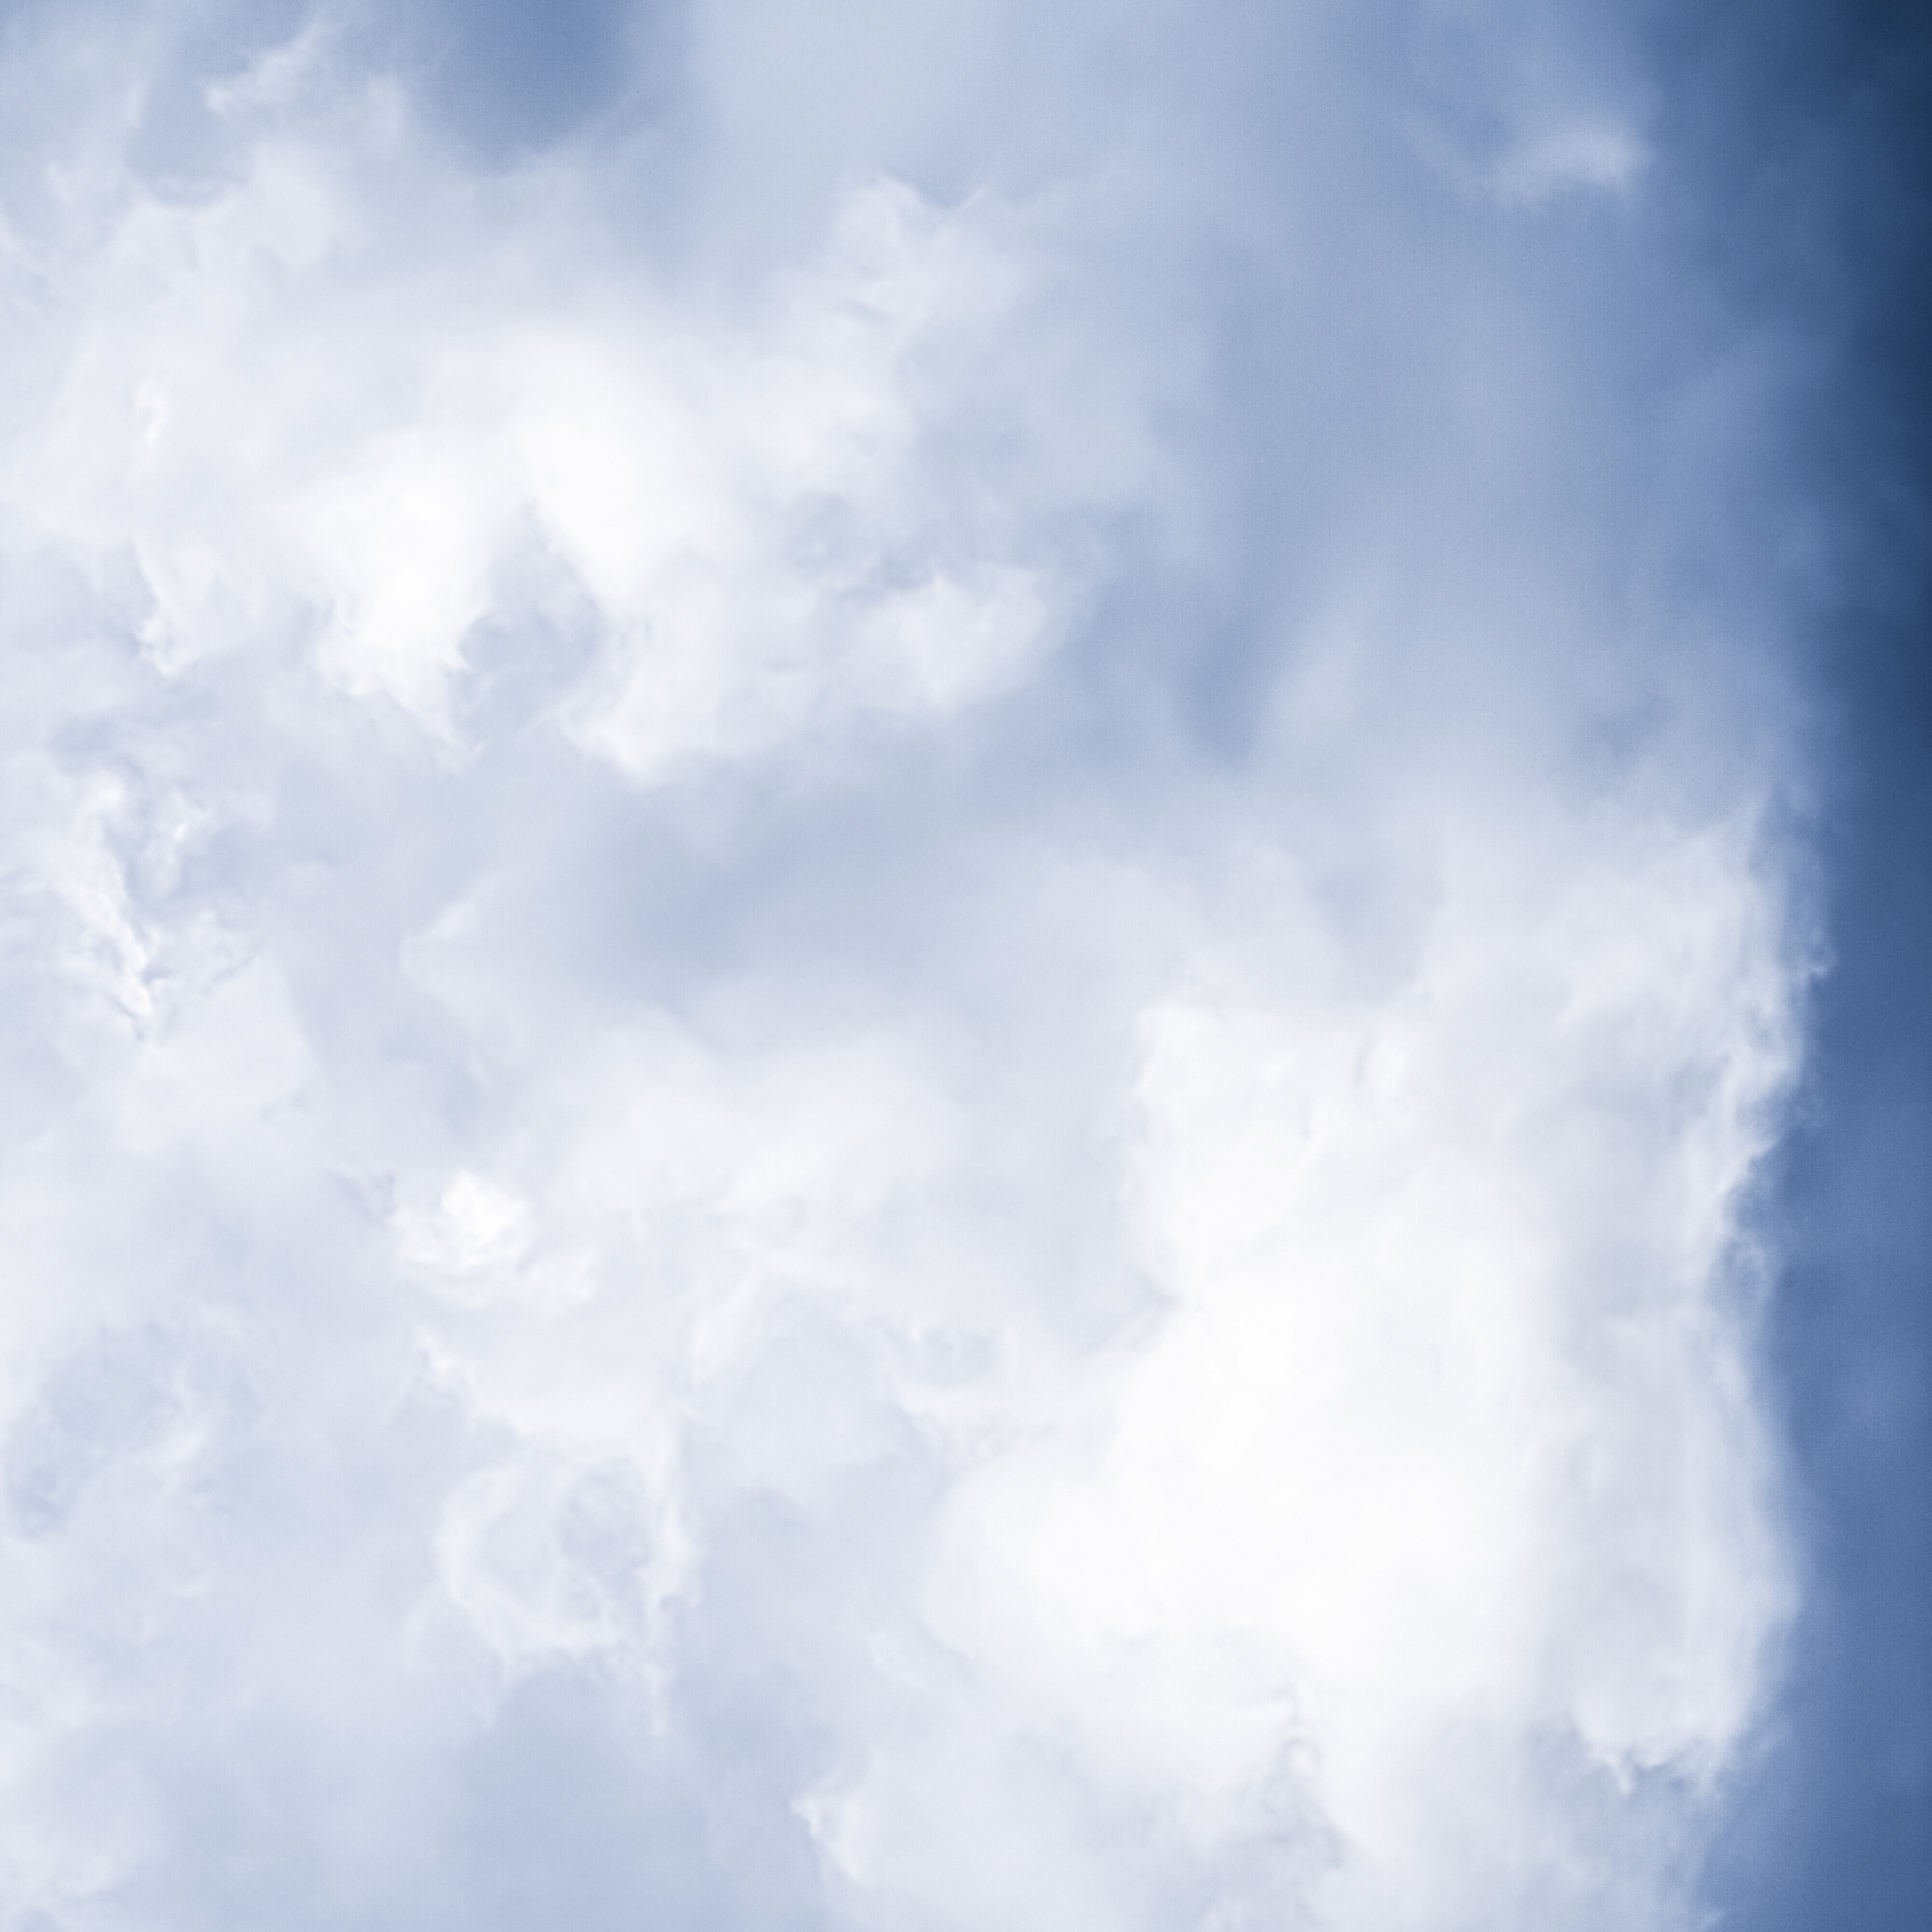 Minimalist Blue Sky Cloudy iPad Wallpaper